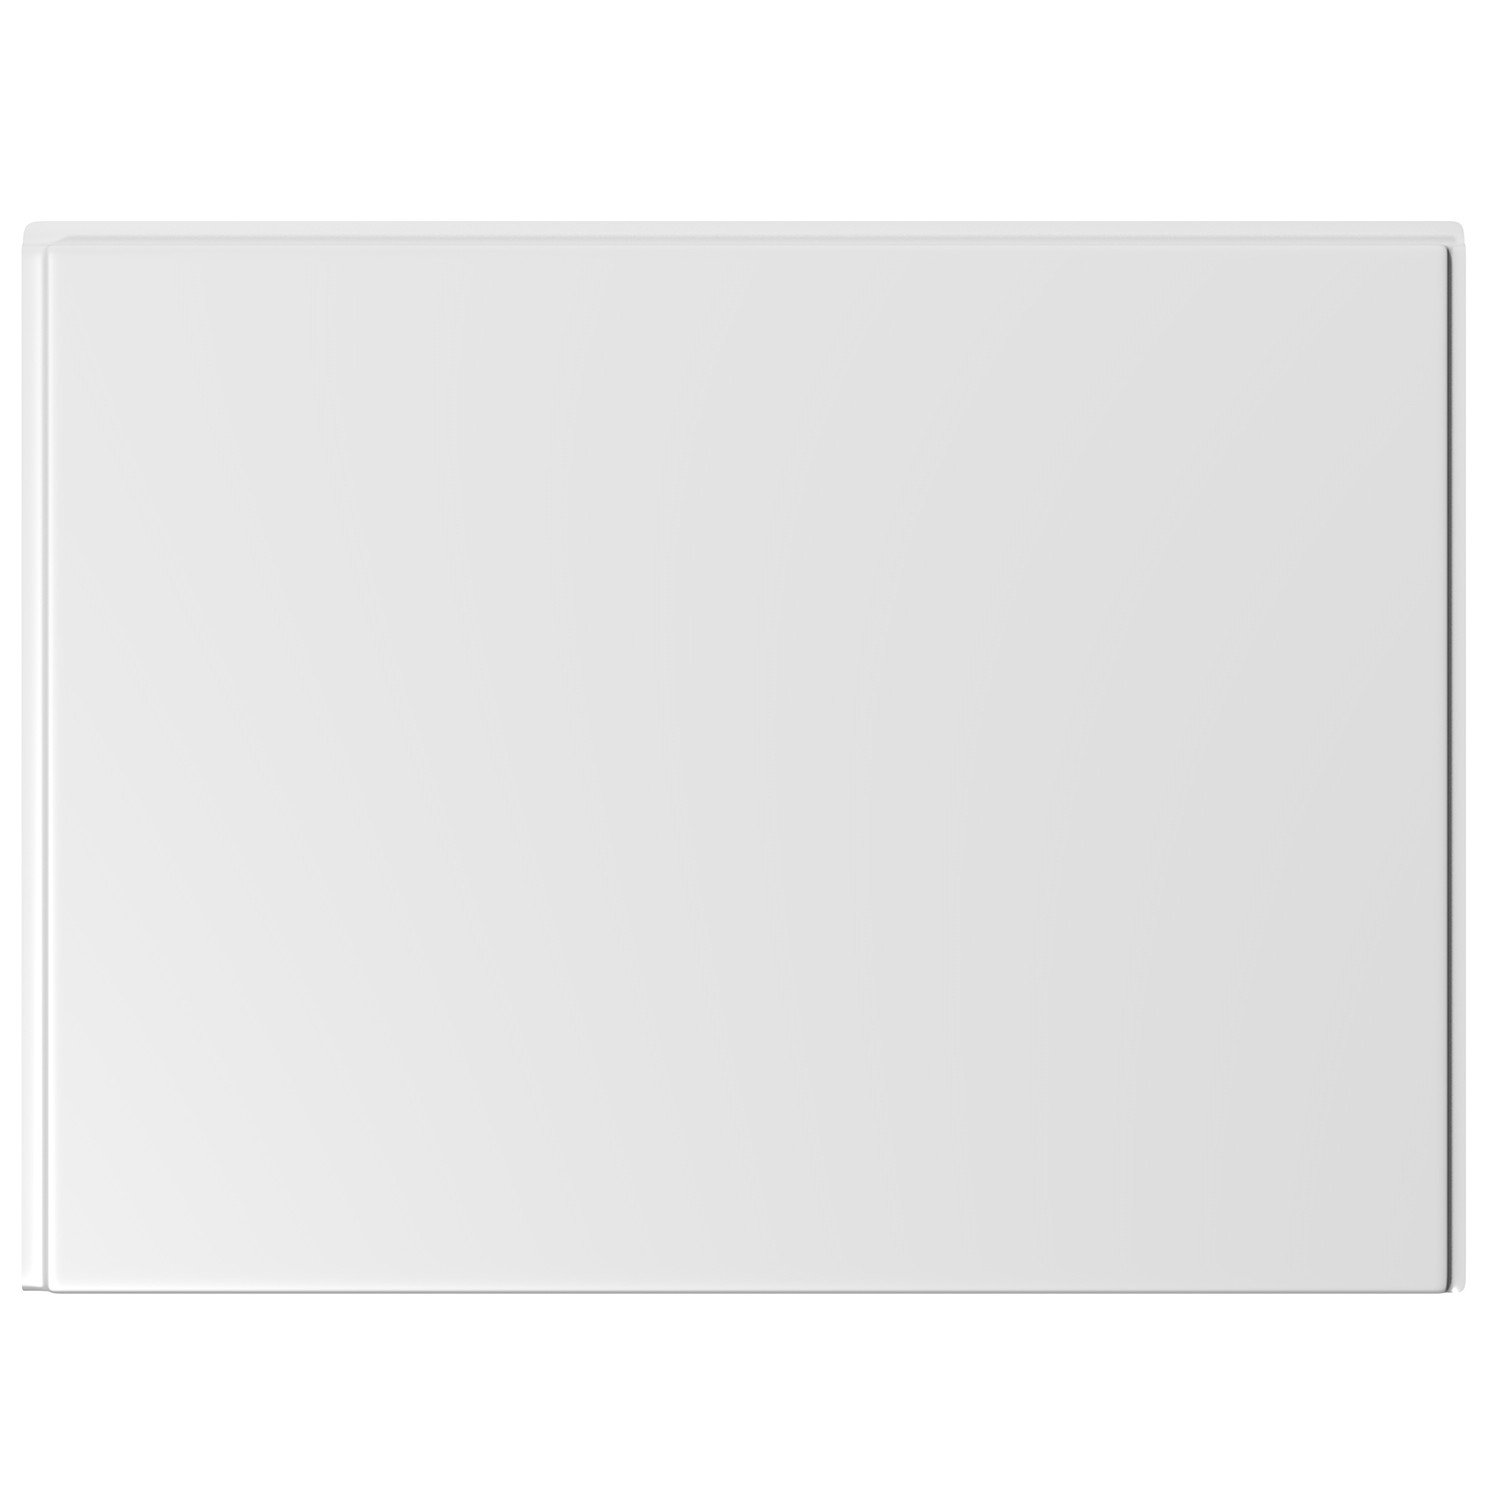 750mm Modern White Gloss Straight End Bath Panel iBathUK